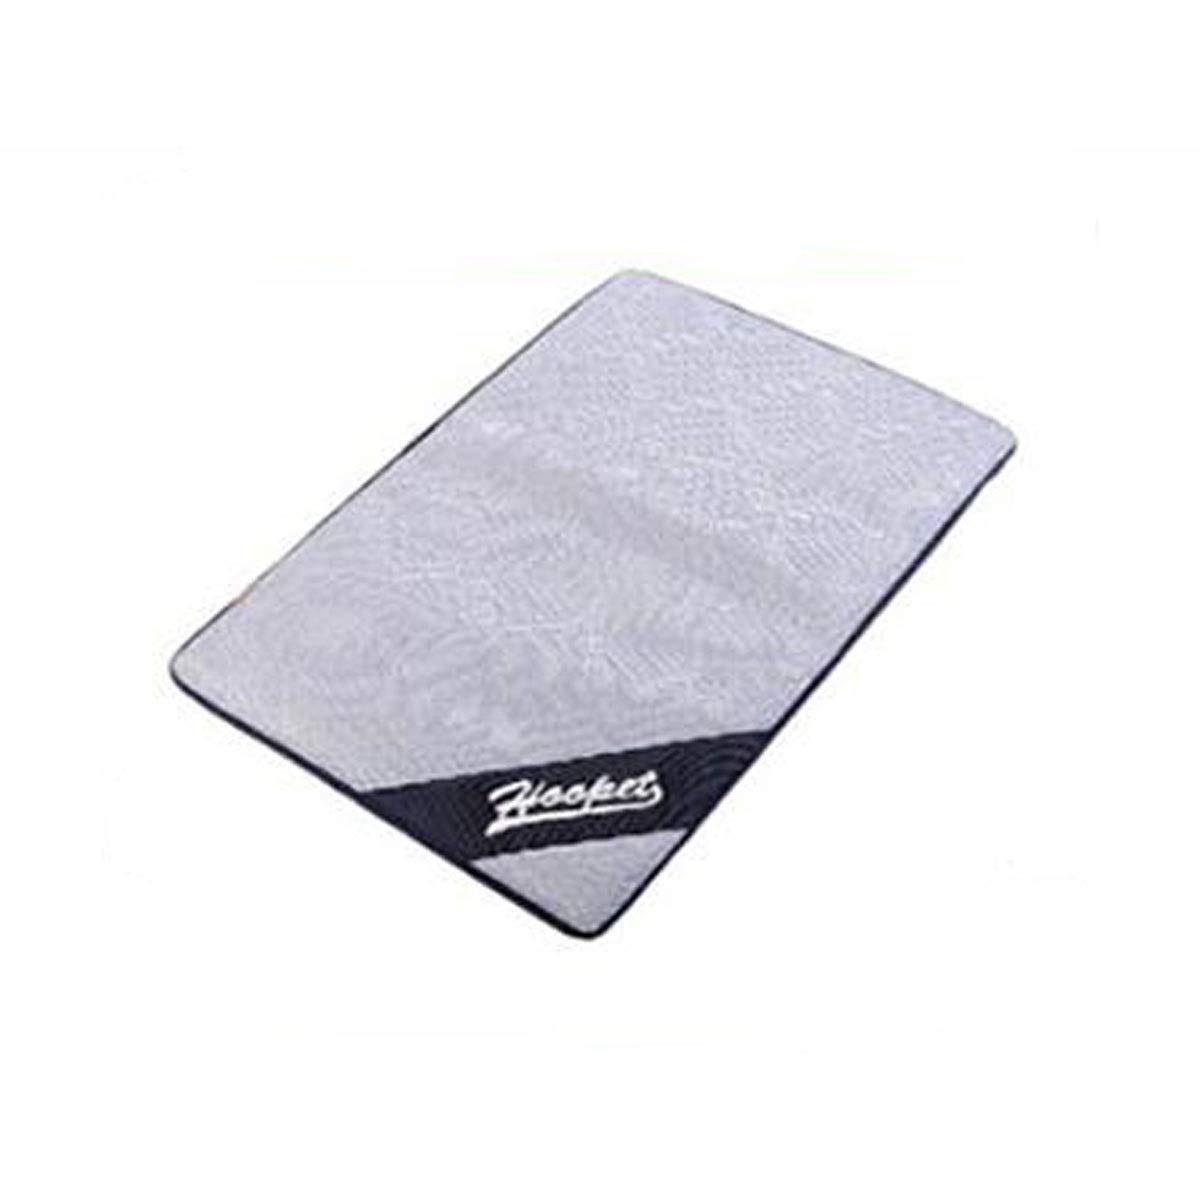 Light bluee S Light bluee S Hongyushanghang Dog Cooling Mattress Dog and Cat Bed Summer Cool Pad, Extra Large Non-Toxic, Non-Sticky, Skin-Friendly, Keeps The Pet Sleep Cool and Cushioned (Three colors S-XL) fine